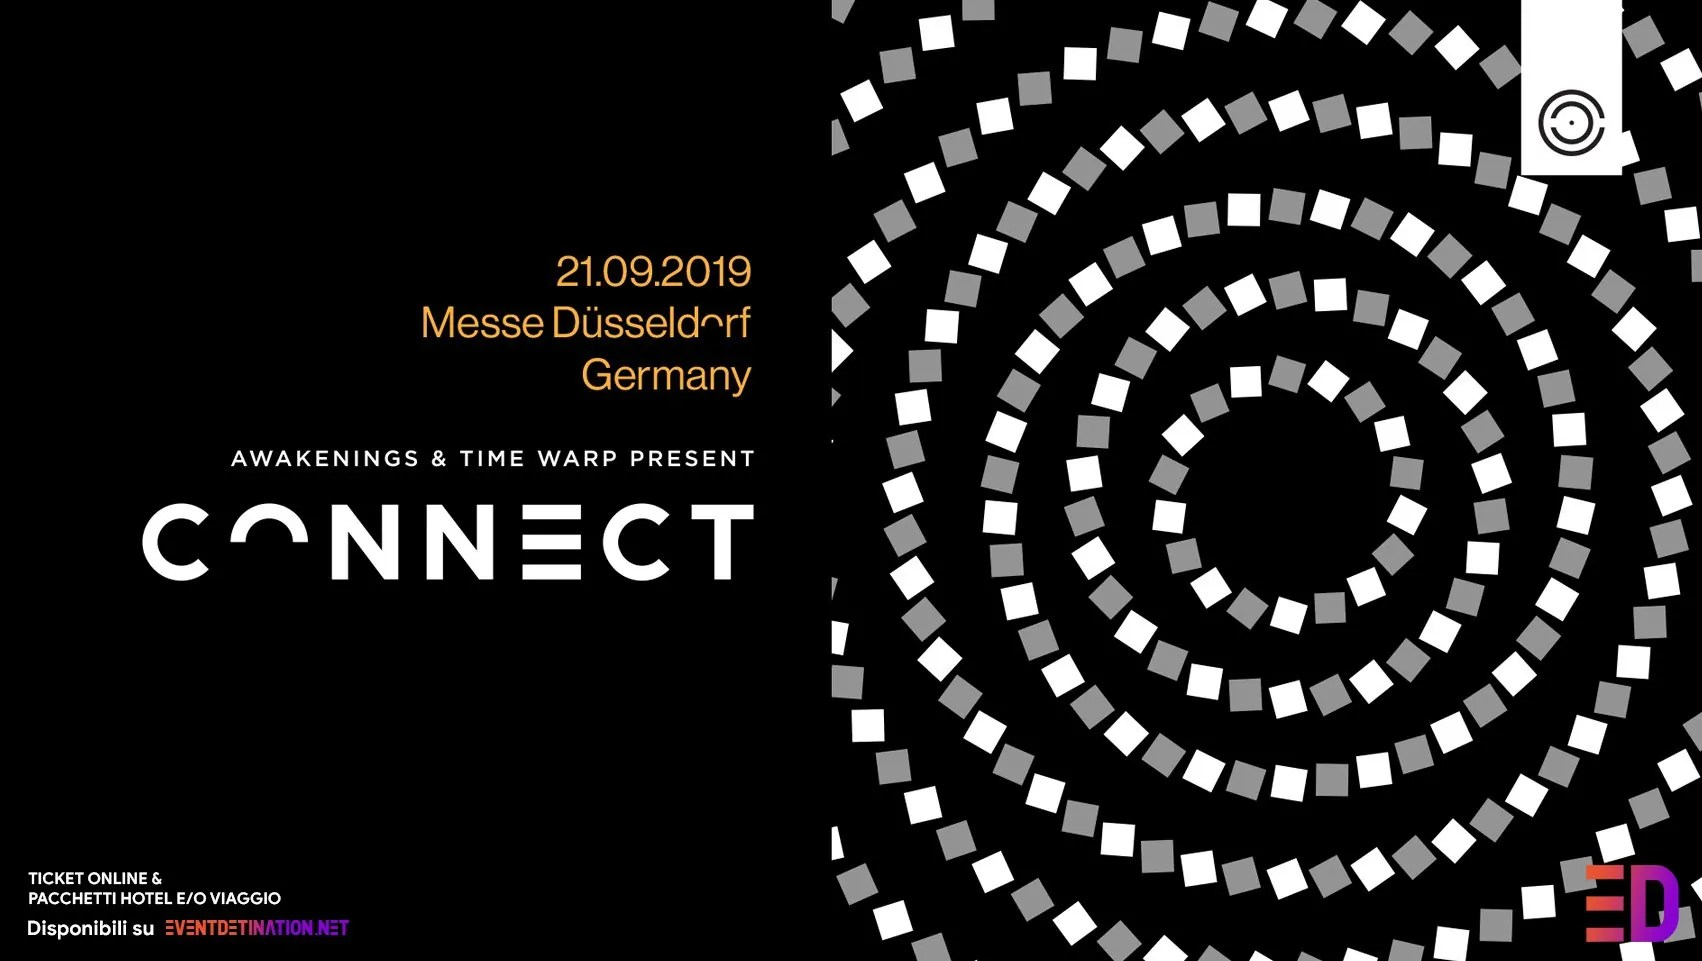 Connect Festival 2019 Düsseldorf – 21 Settembre 2019 by Time Warp & Awakenings -Ticket e Pacchetti Hotel